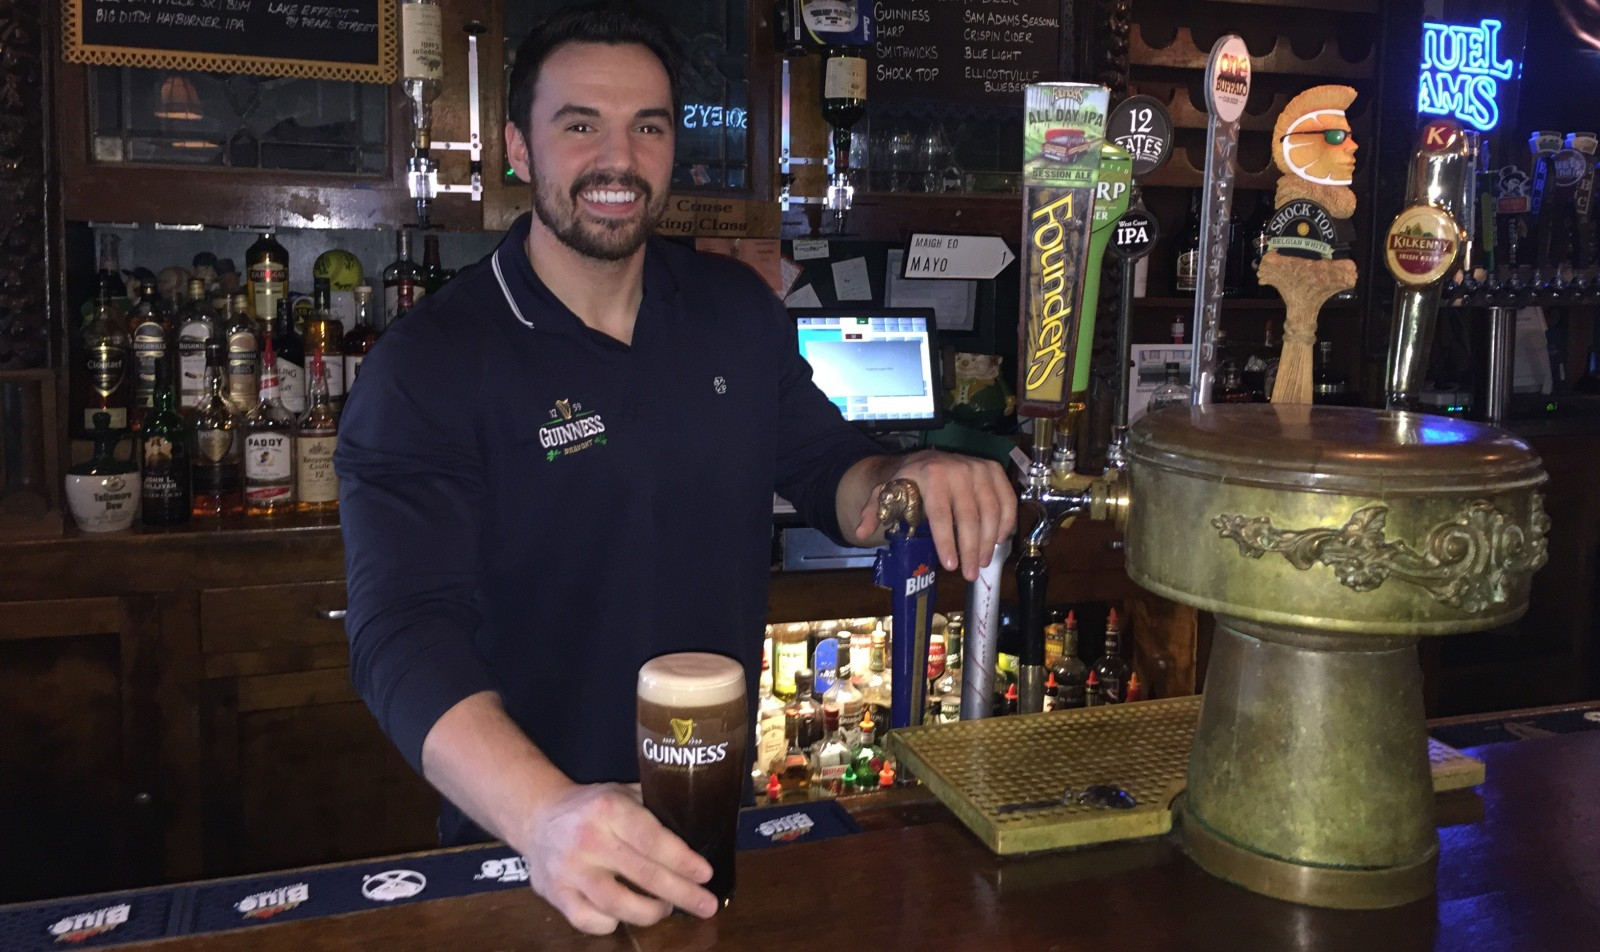 The Blackthorn's Pat Hayes has perfected the shamrock on every Guinness he pours. (Elizabeth Carey/Special to The News)